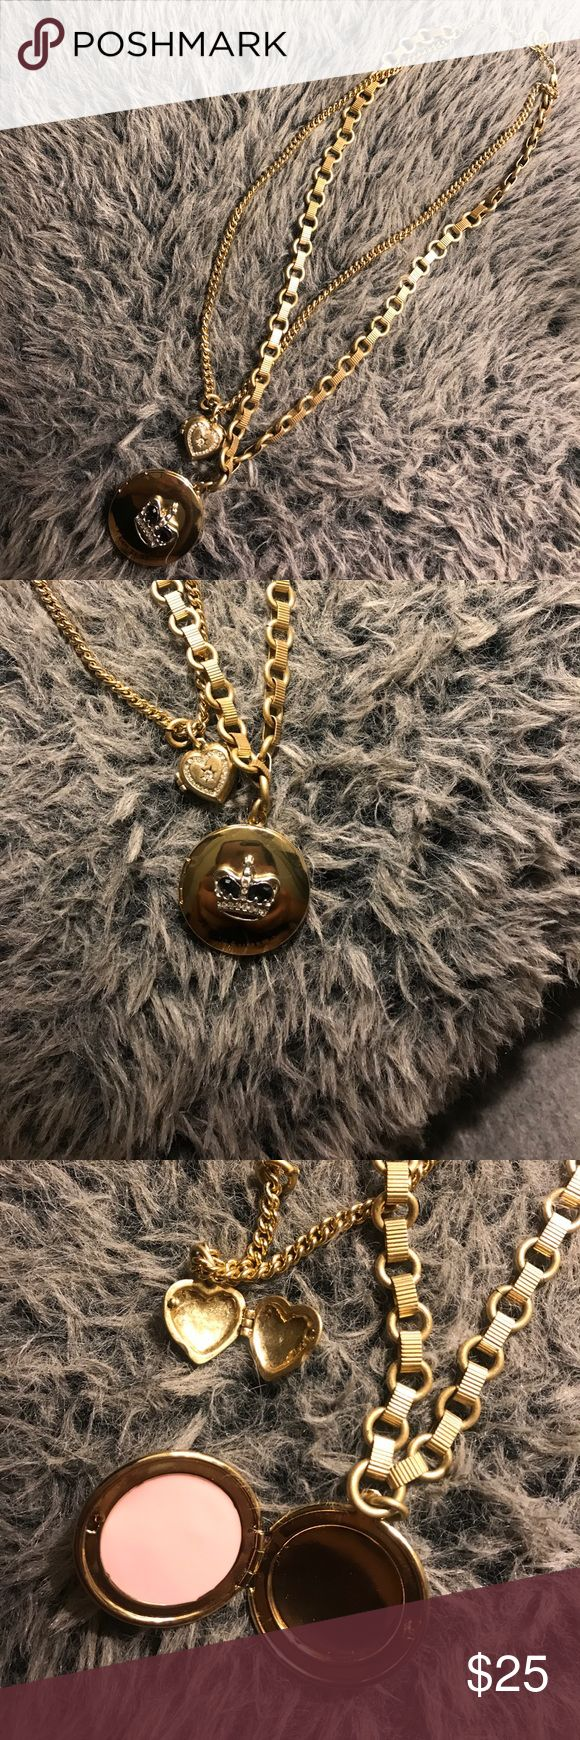 🔥 Juicy Couture double locket necklace Super cute in great condition! Hardly wore it. Some of the lettering is slightly faded (as pictured) both lockers open up. Juicy Couture Jewelry Necklaces